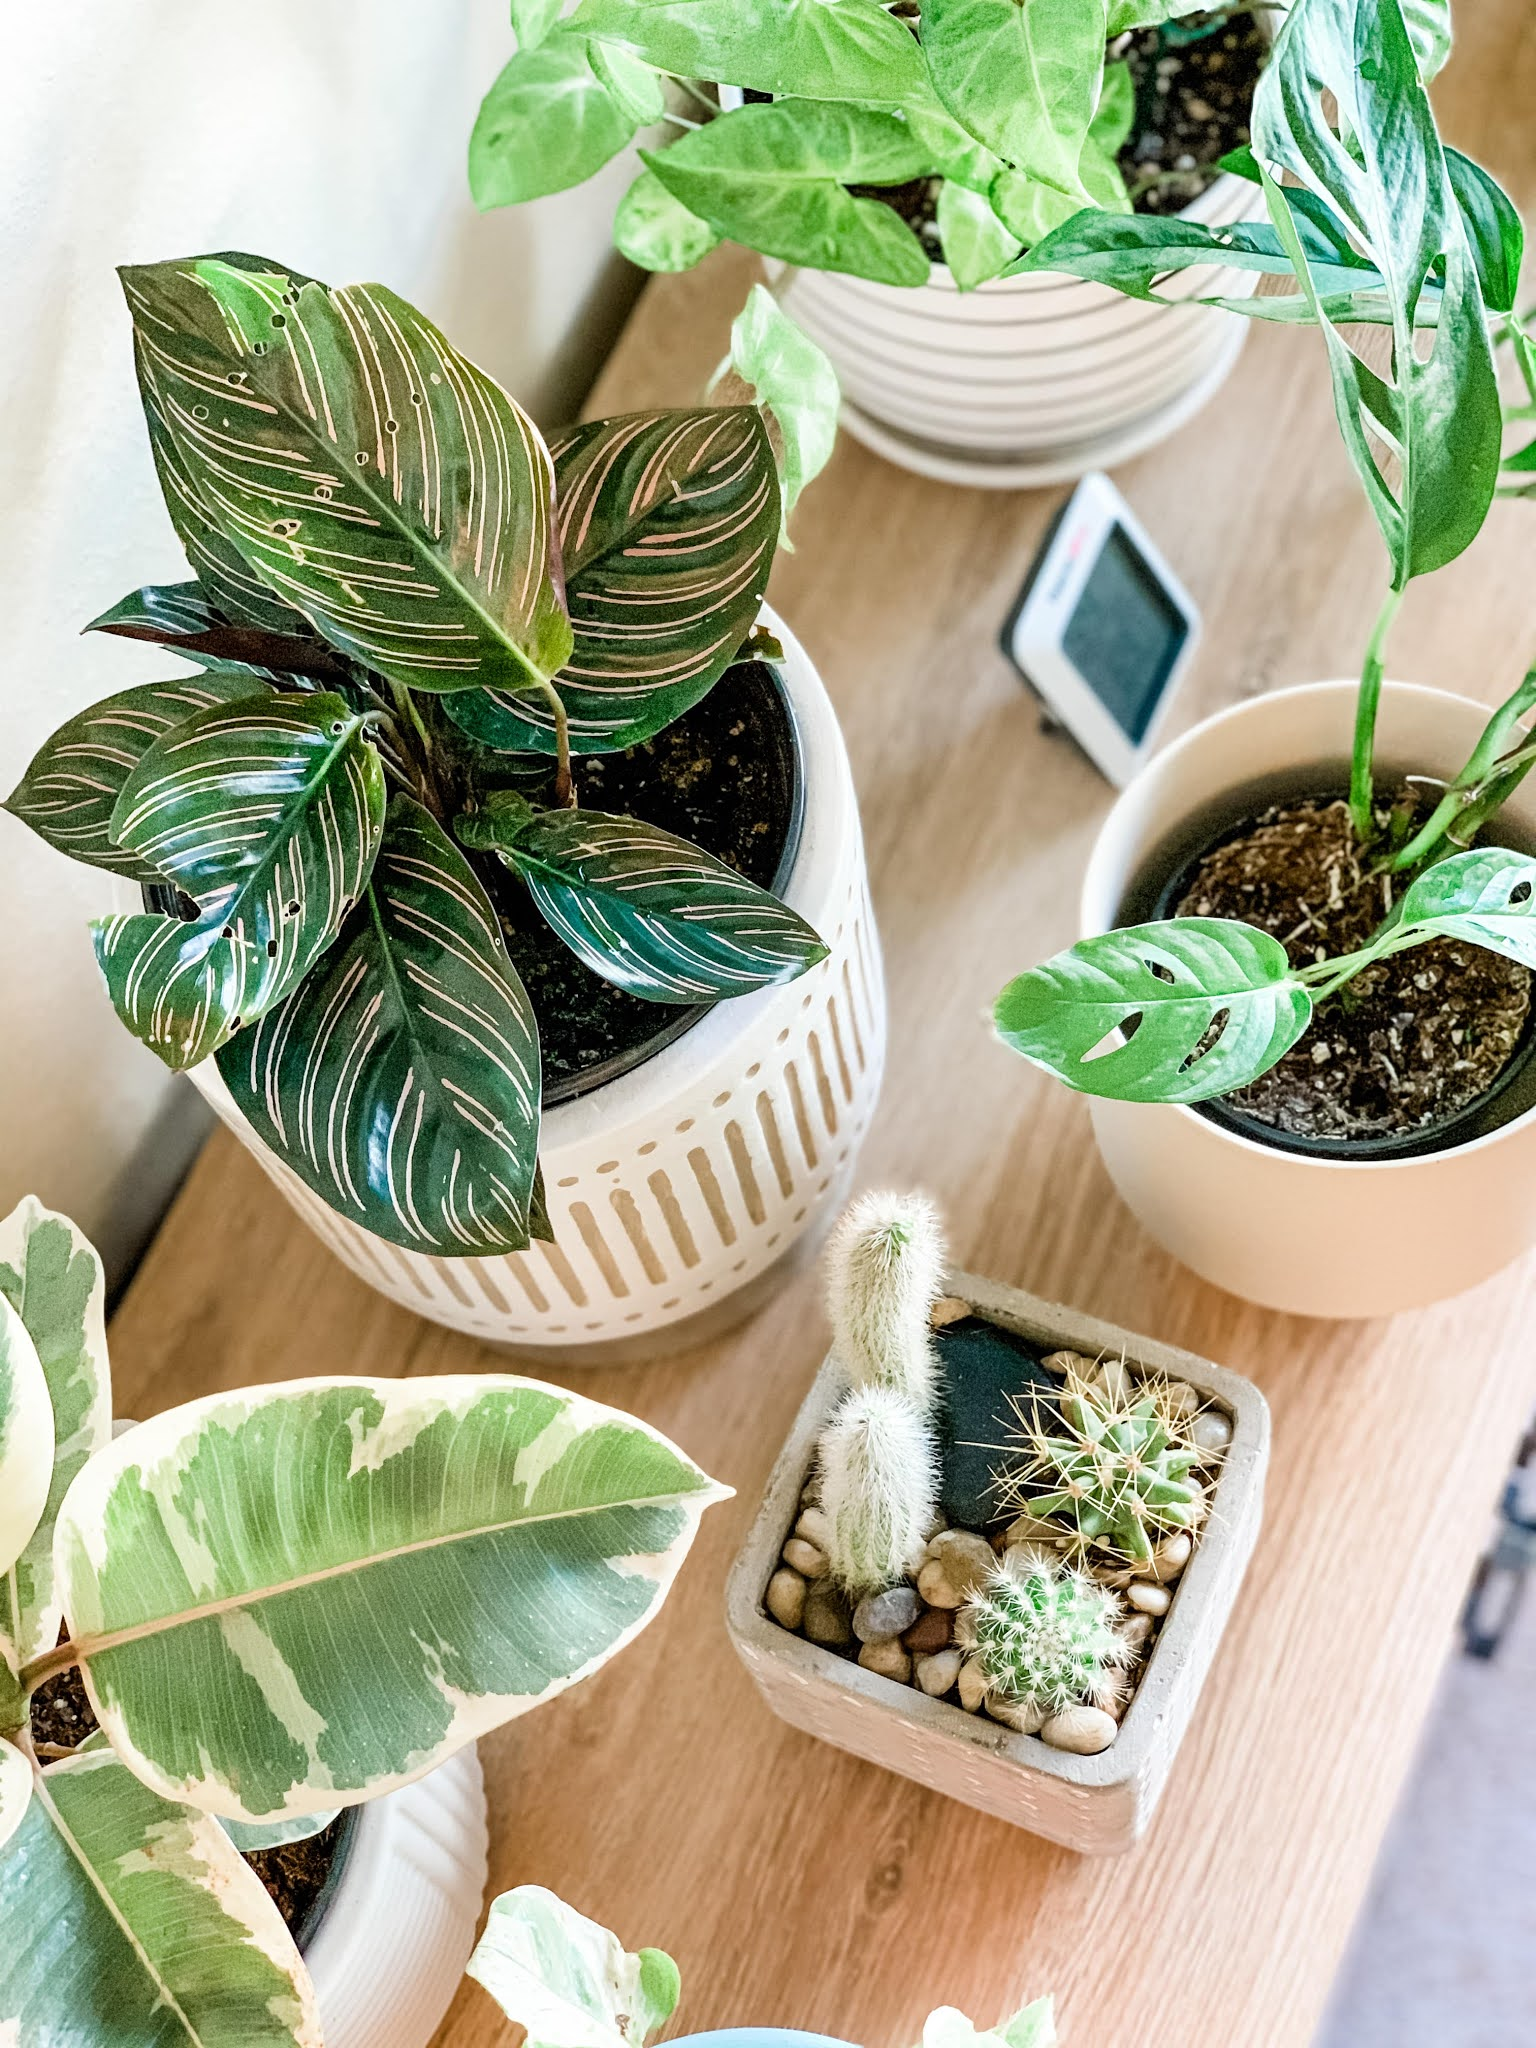 Assorted indoor houseplants on a table seen from above